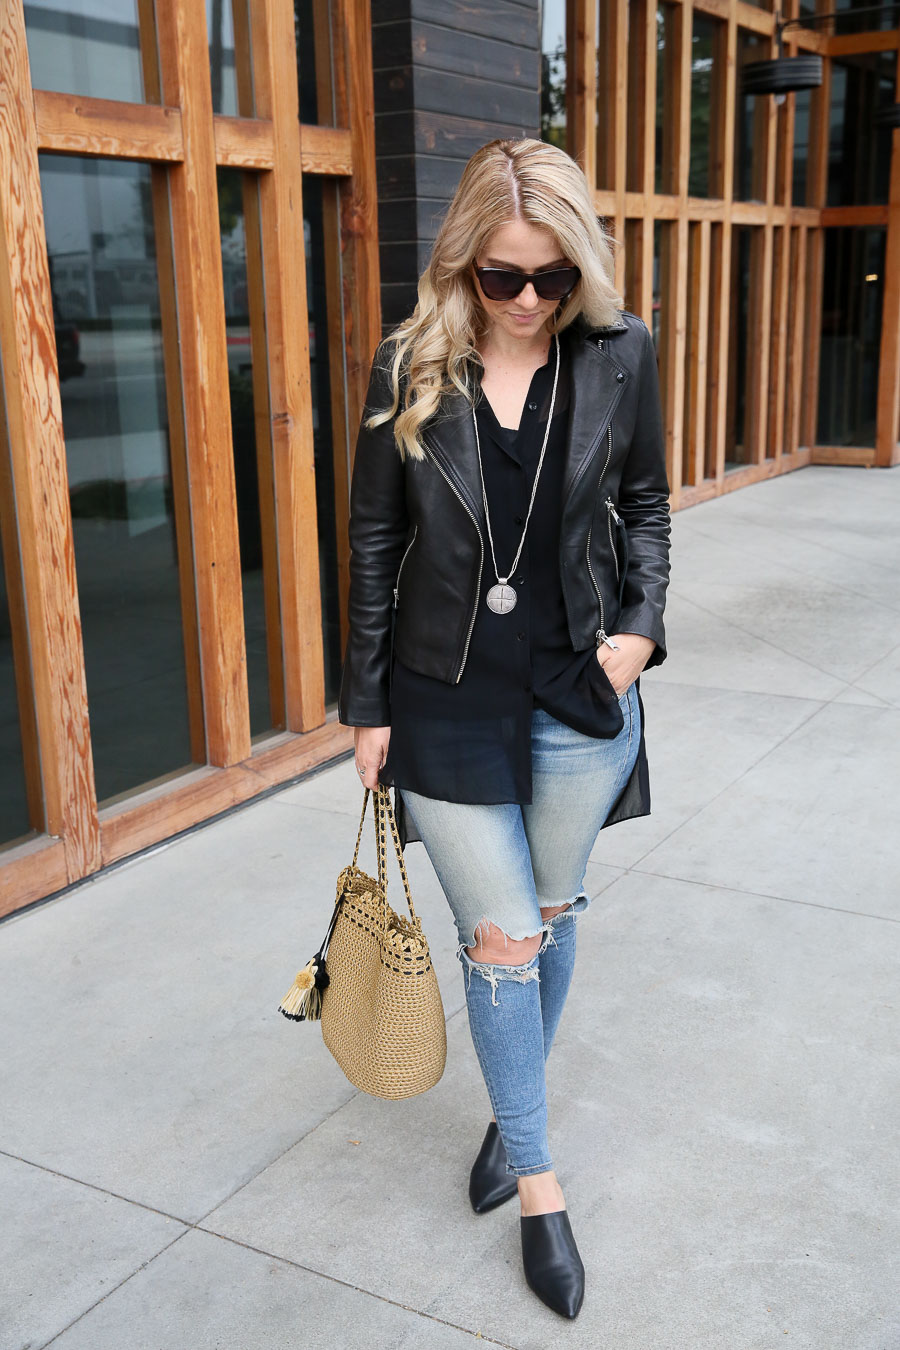 How to Wear Long Shirts w. Leather Jacket and Jeans